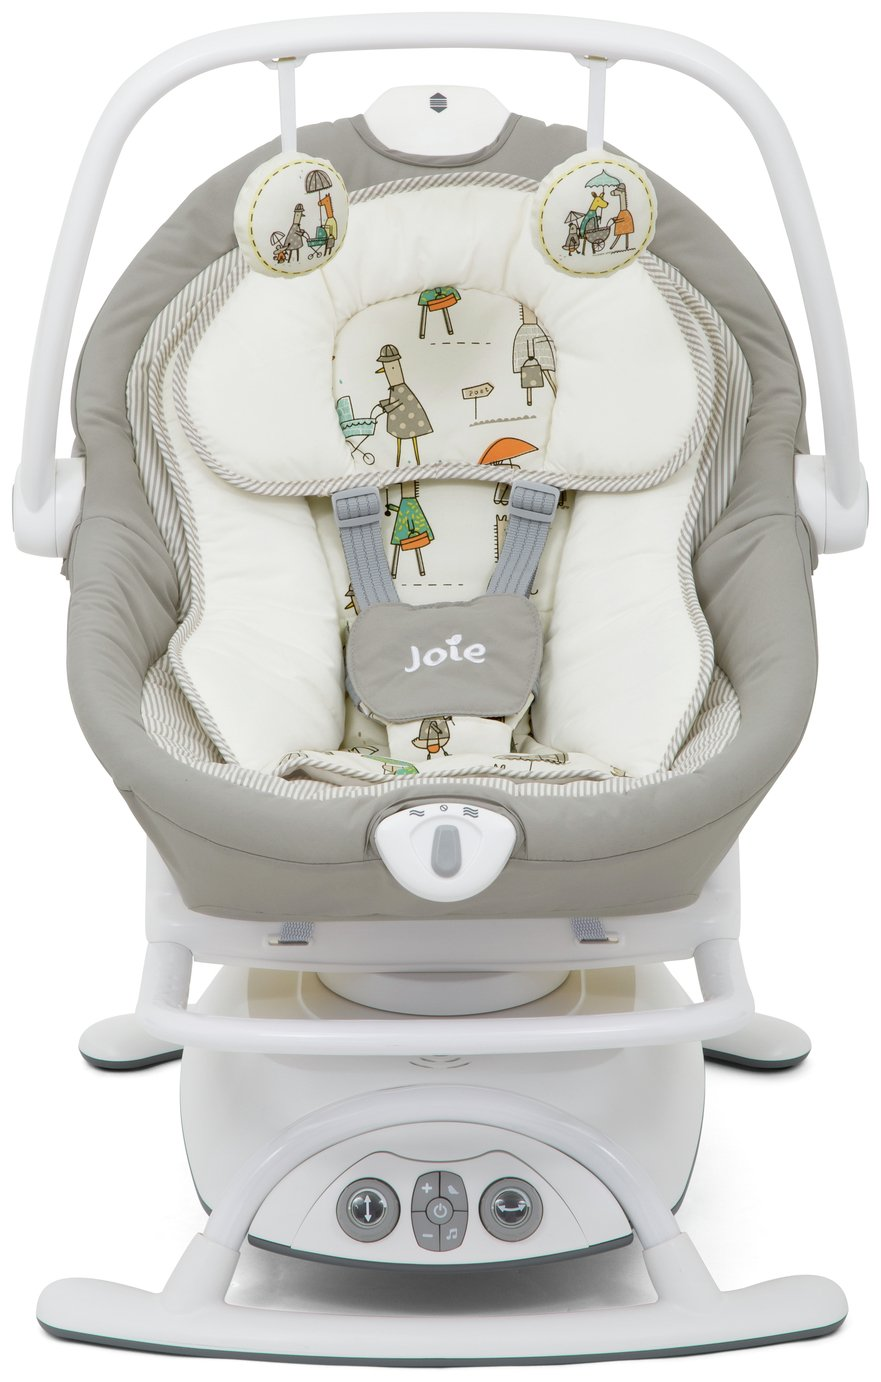 Joie Sansa Lounger - In The Rain Best Price, Cheapest Prices